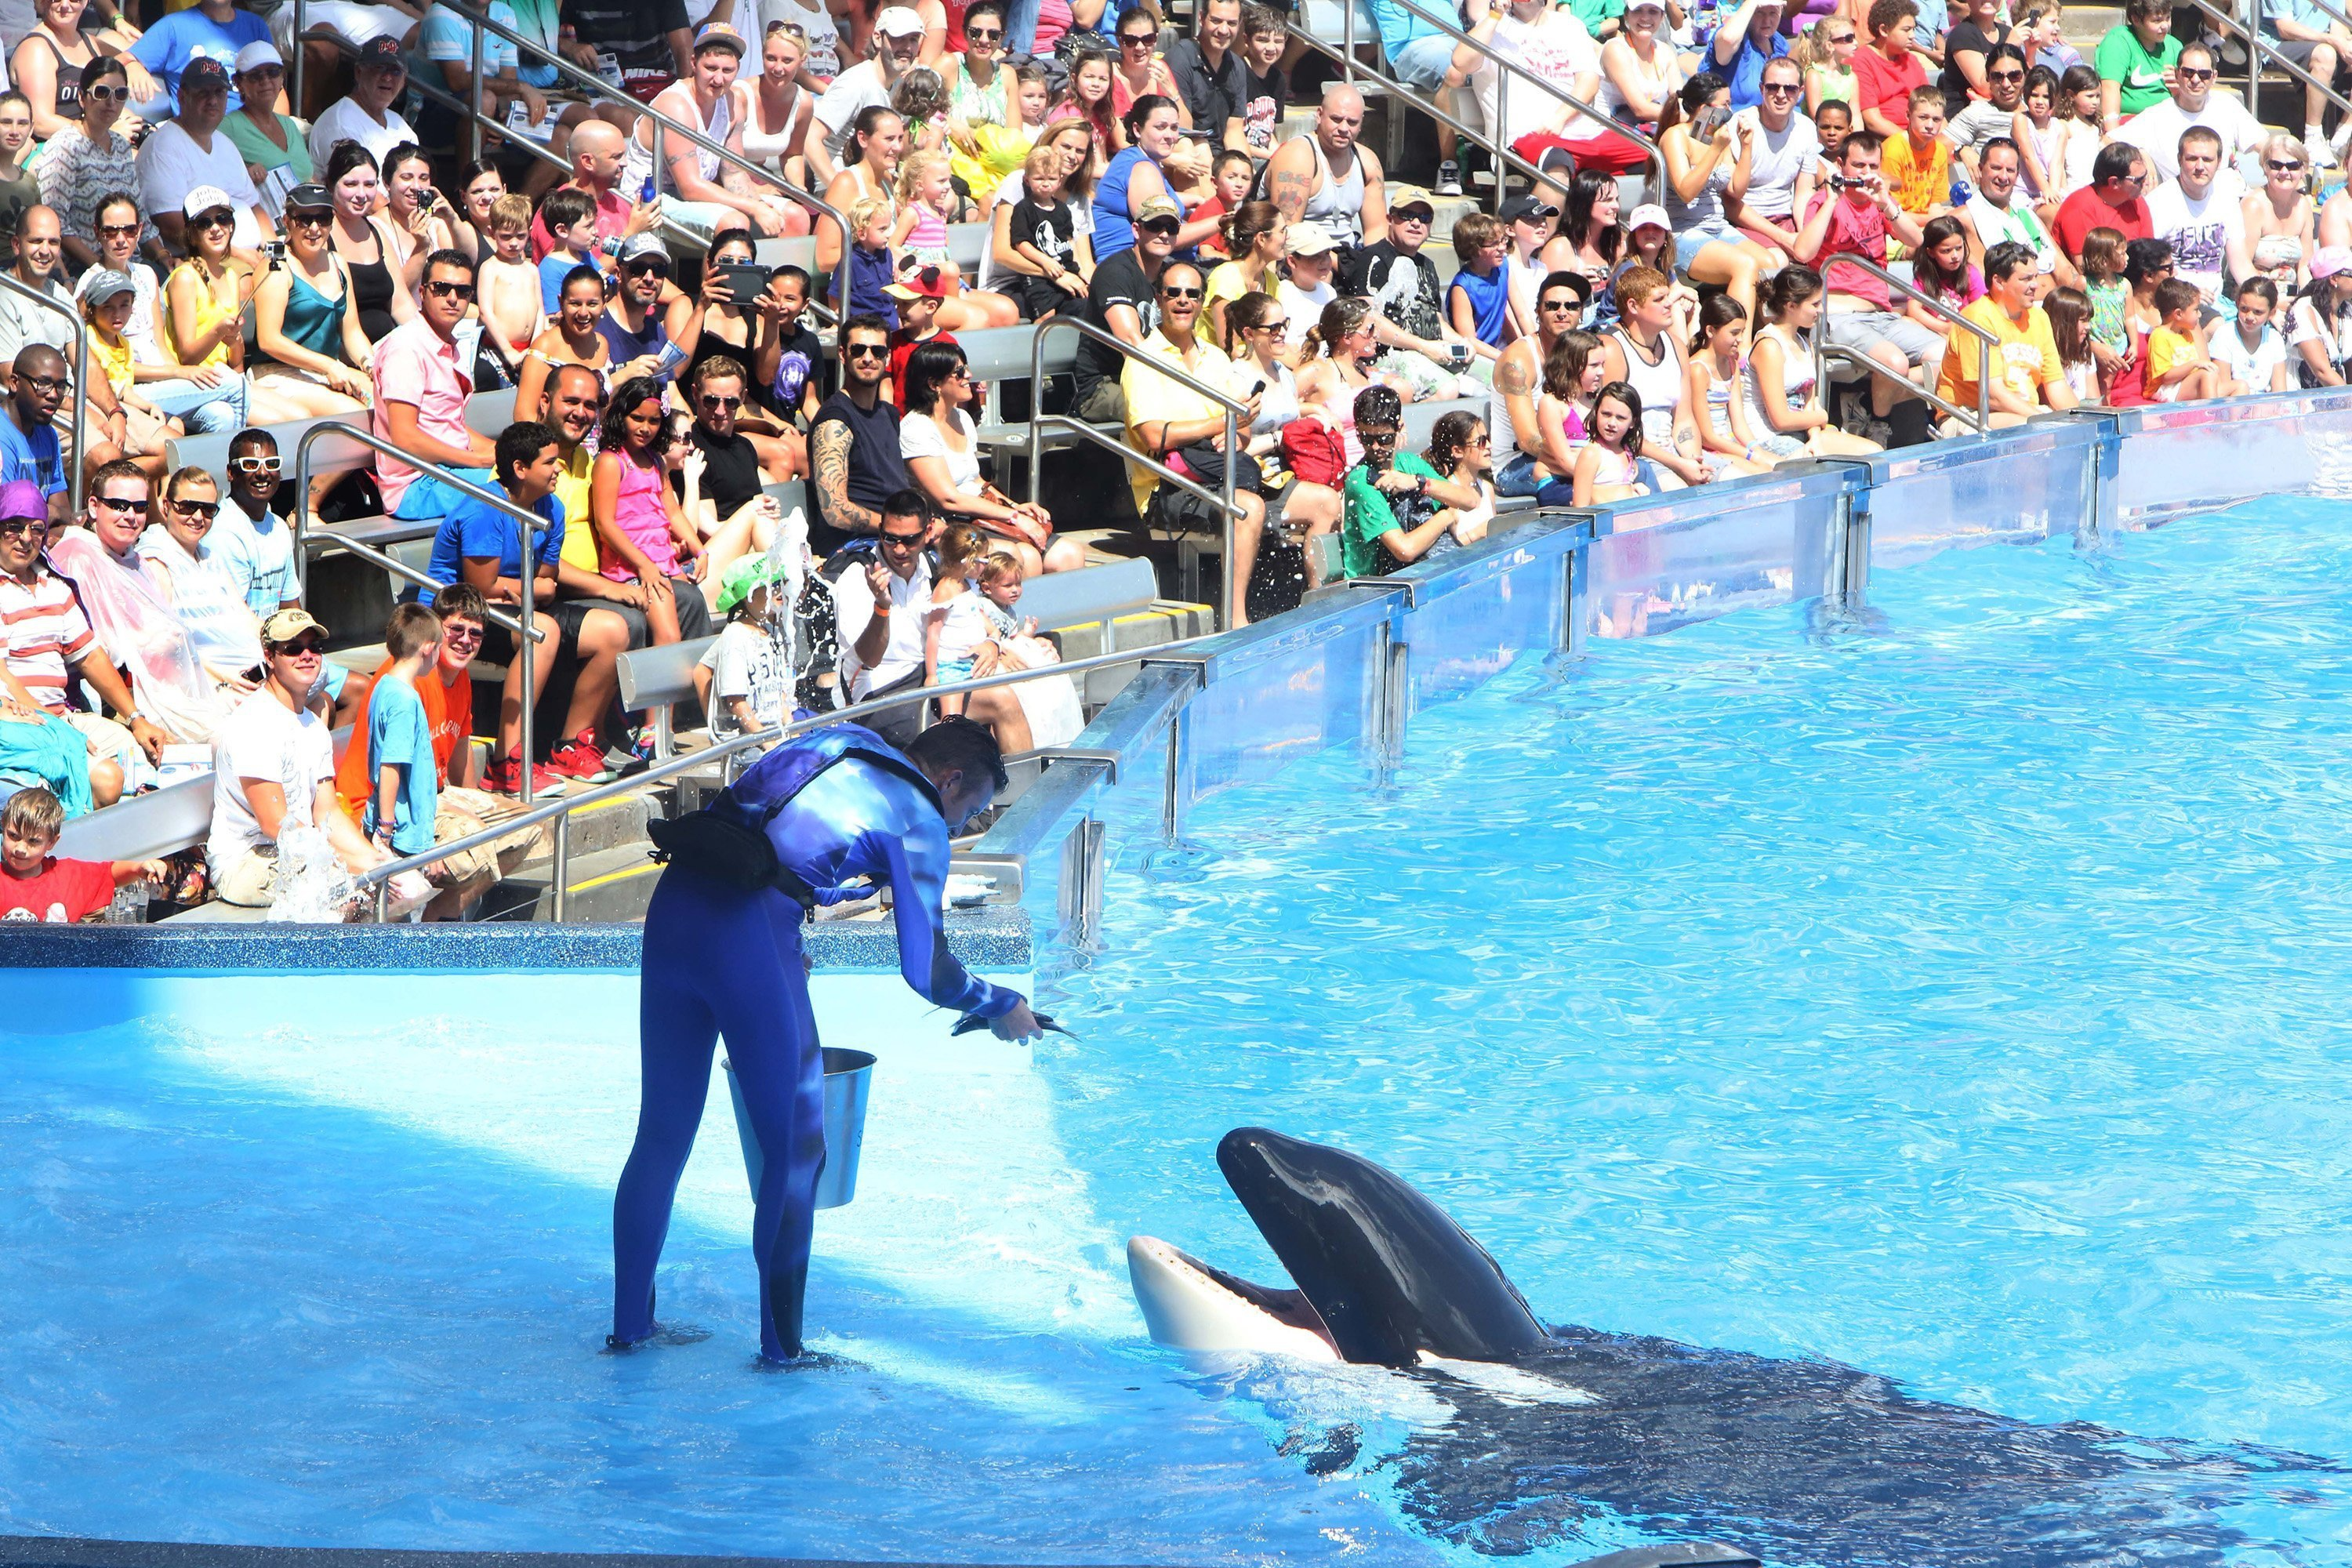 Some aquariums scaling back amid controversy